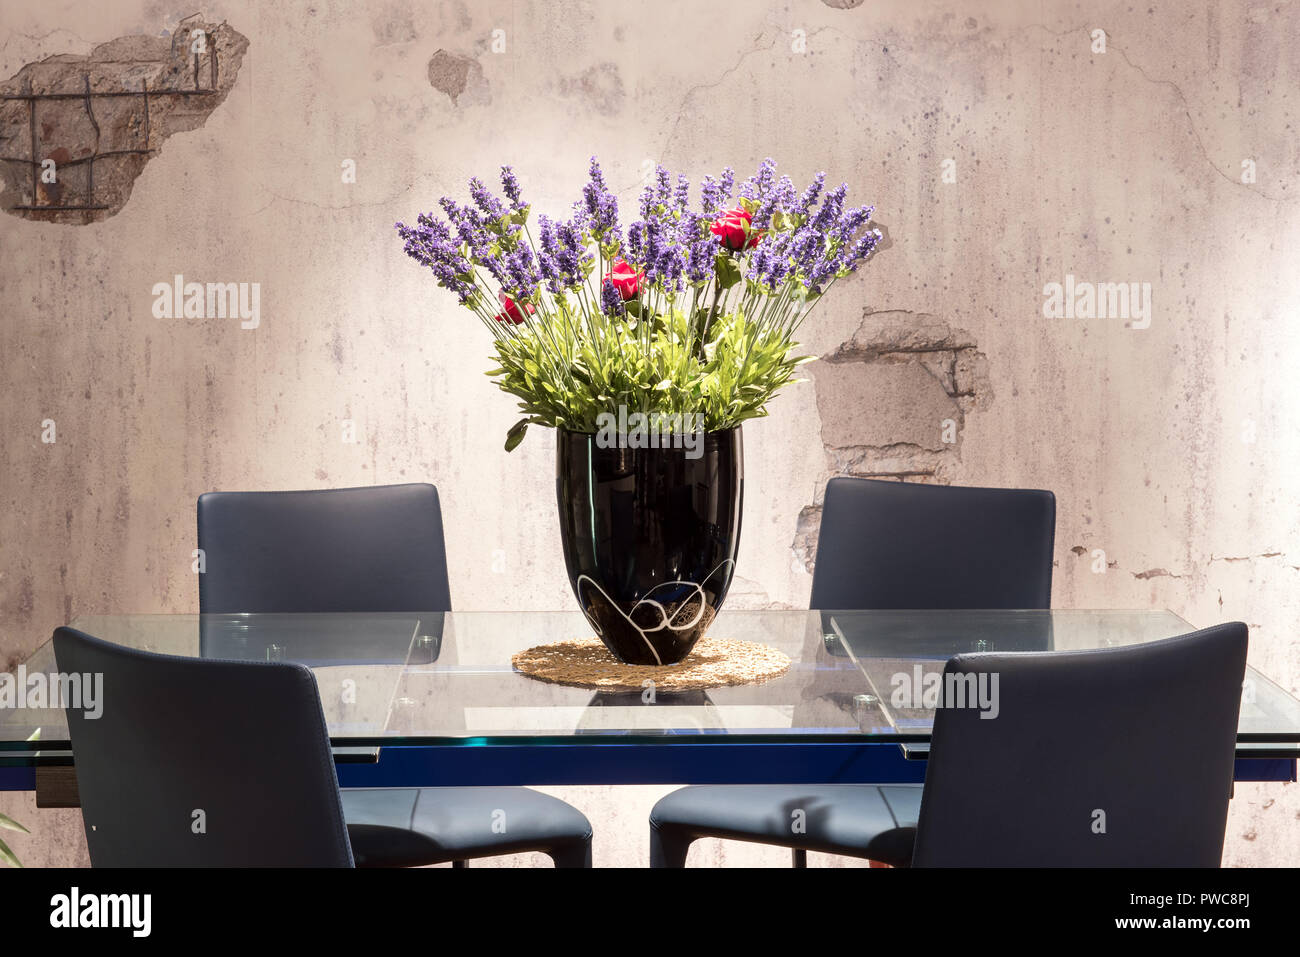 Dining Table With Floral Centerpiece With Colorful Blue And Red Flowers In A Vase And A Textured Grey Background Wall Stock Photo Alamy